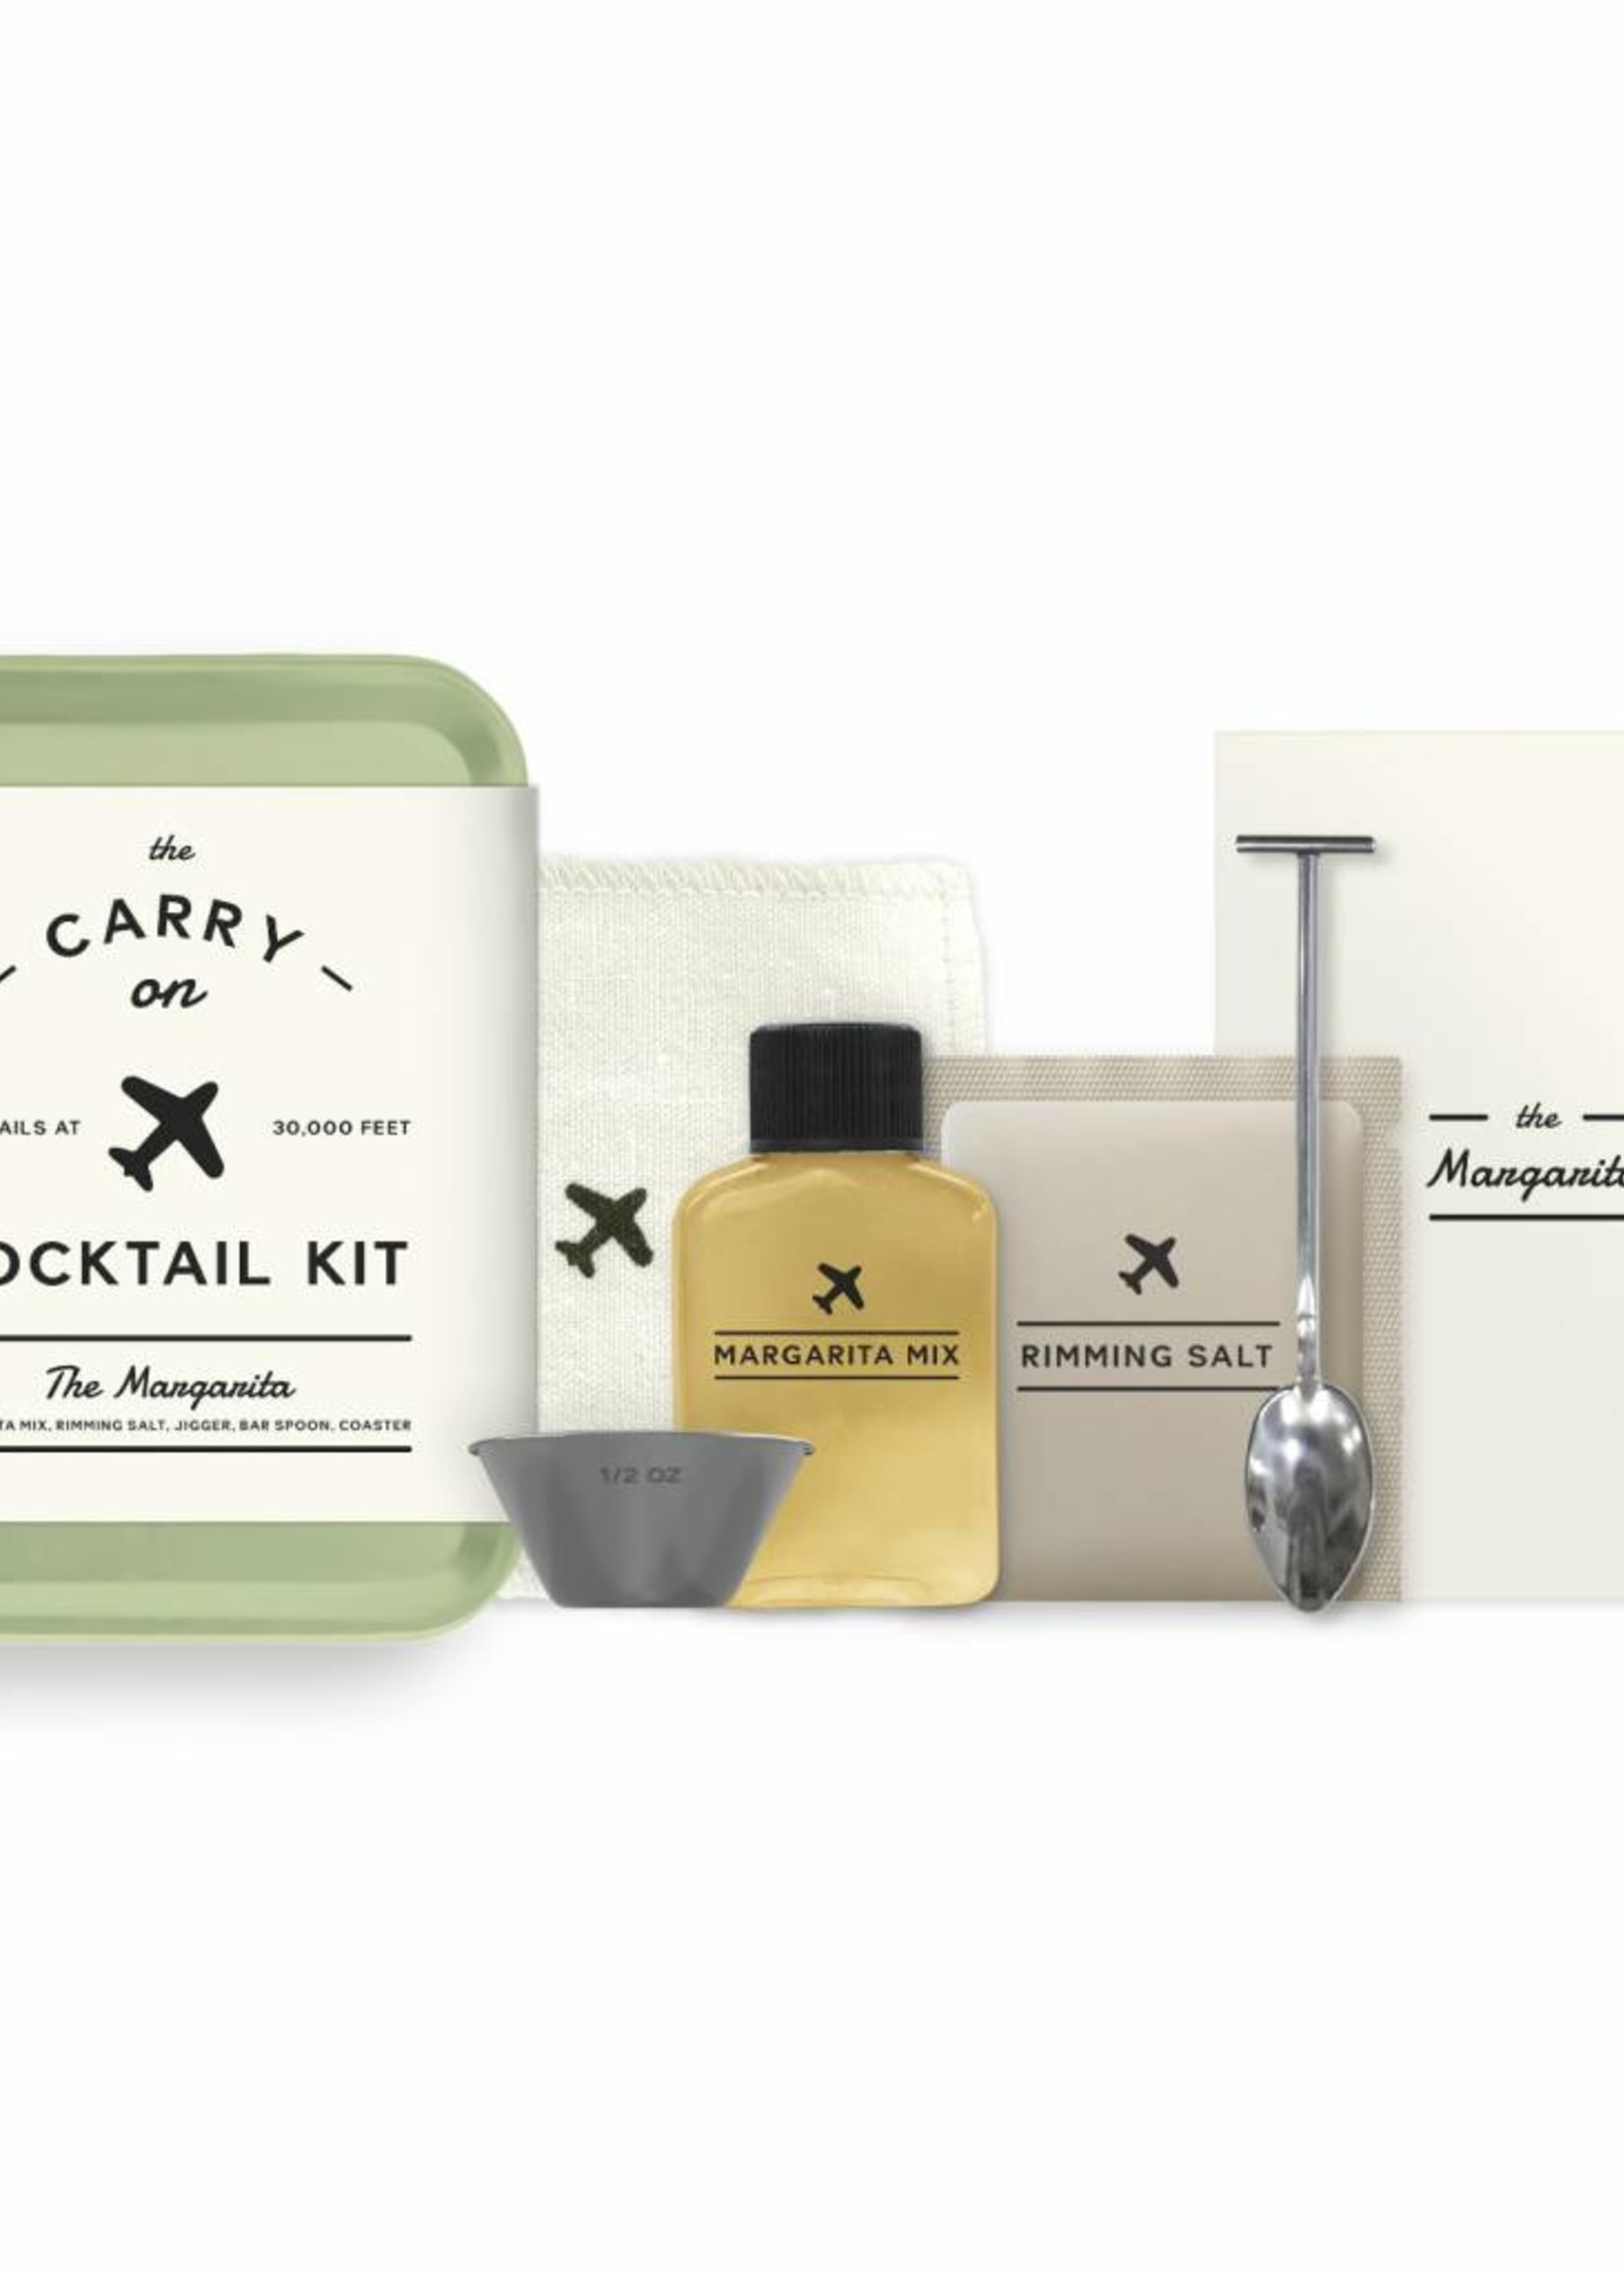 W&P The Carry On Cocktailkit